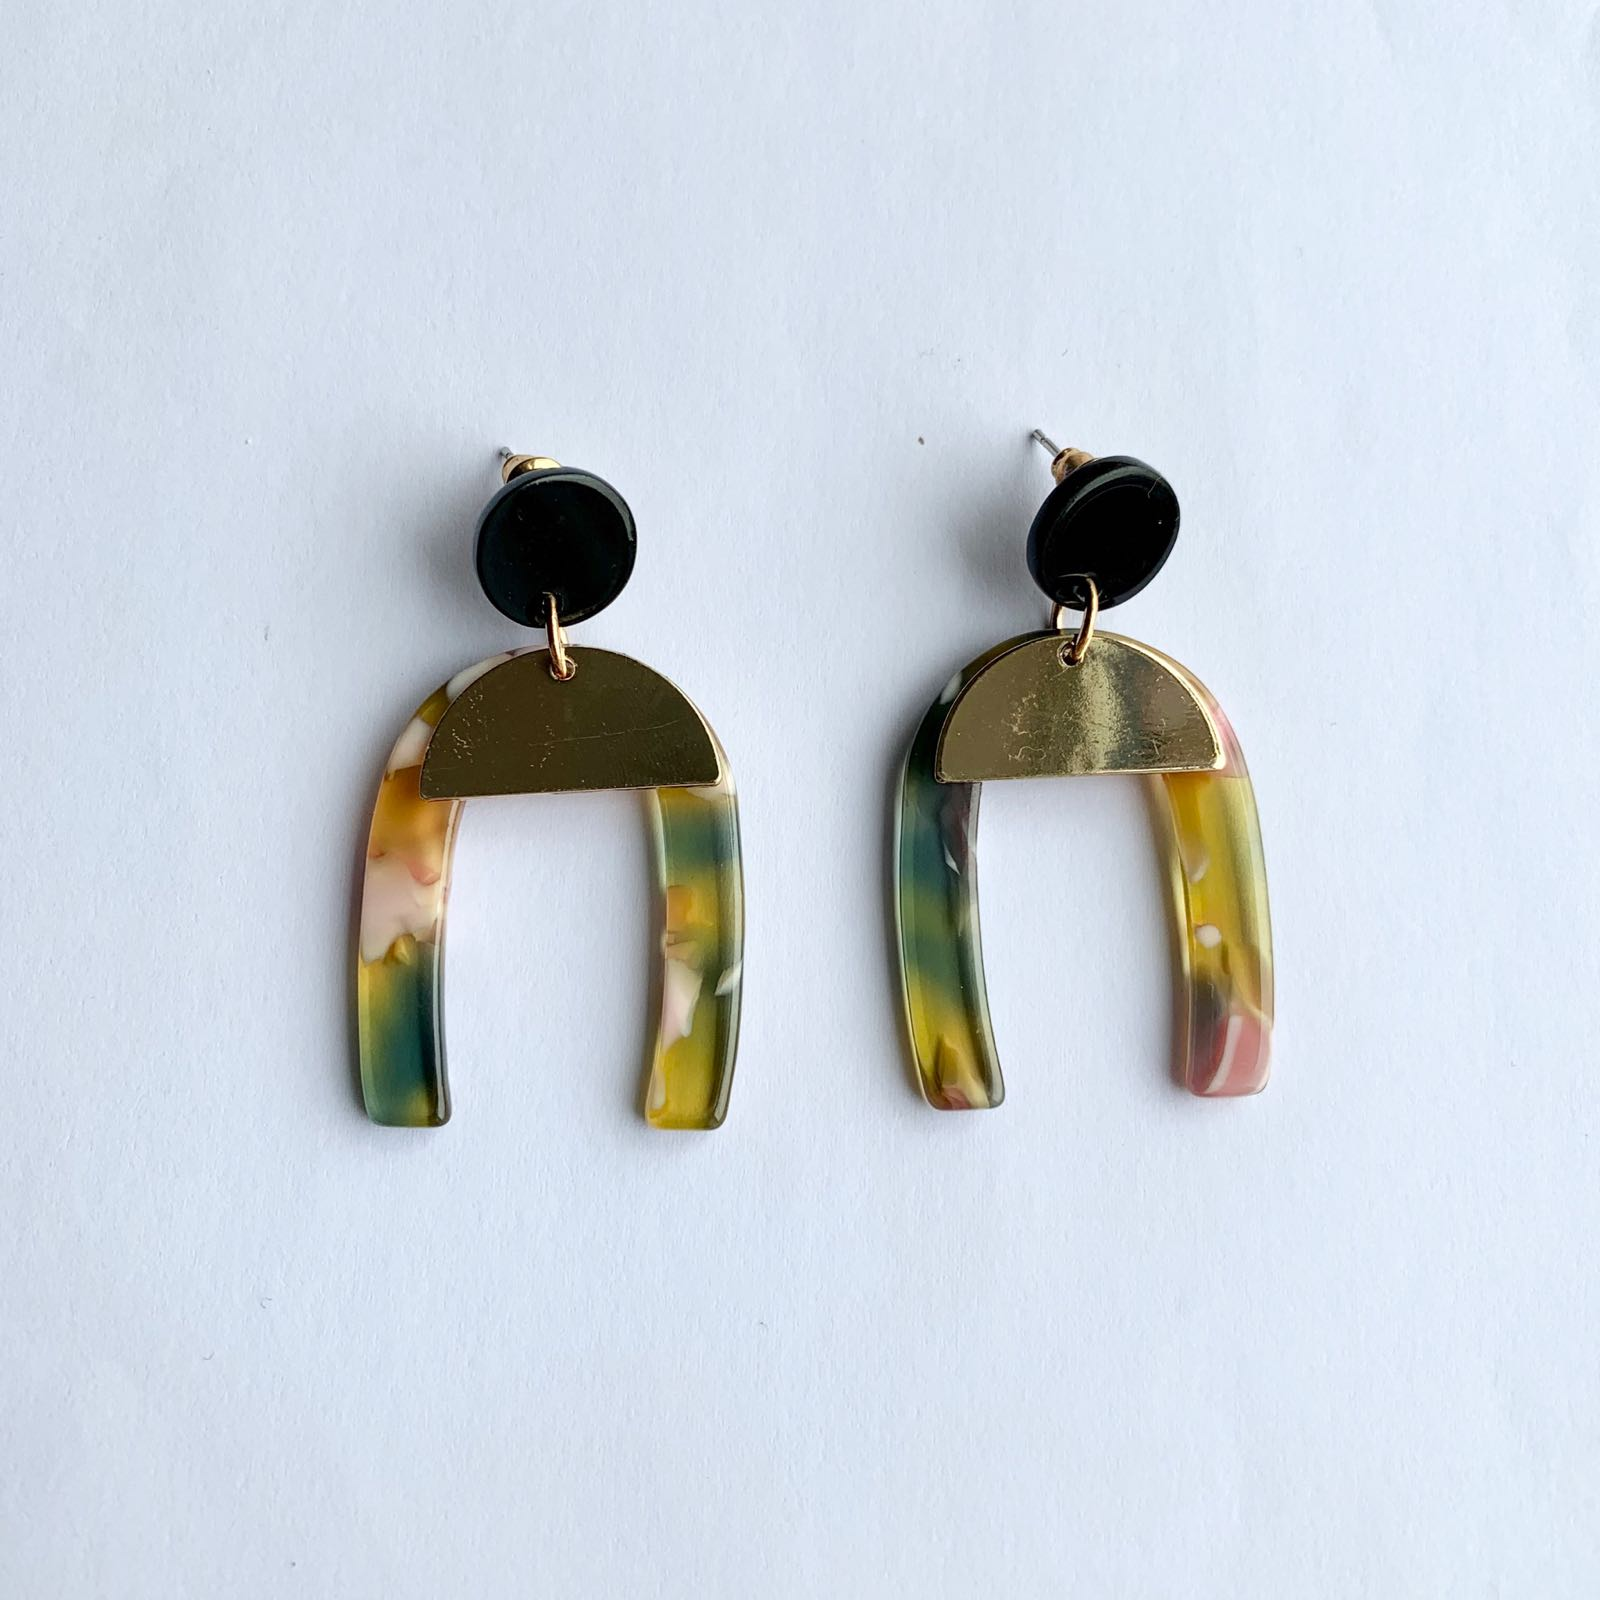 Claudia Arch Resin Earrings pink & green